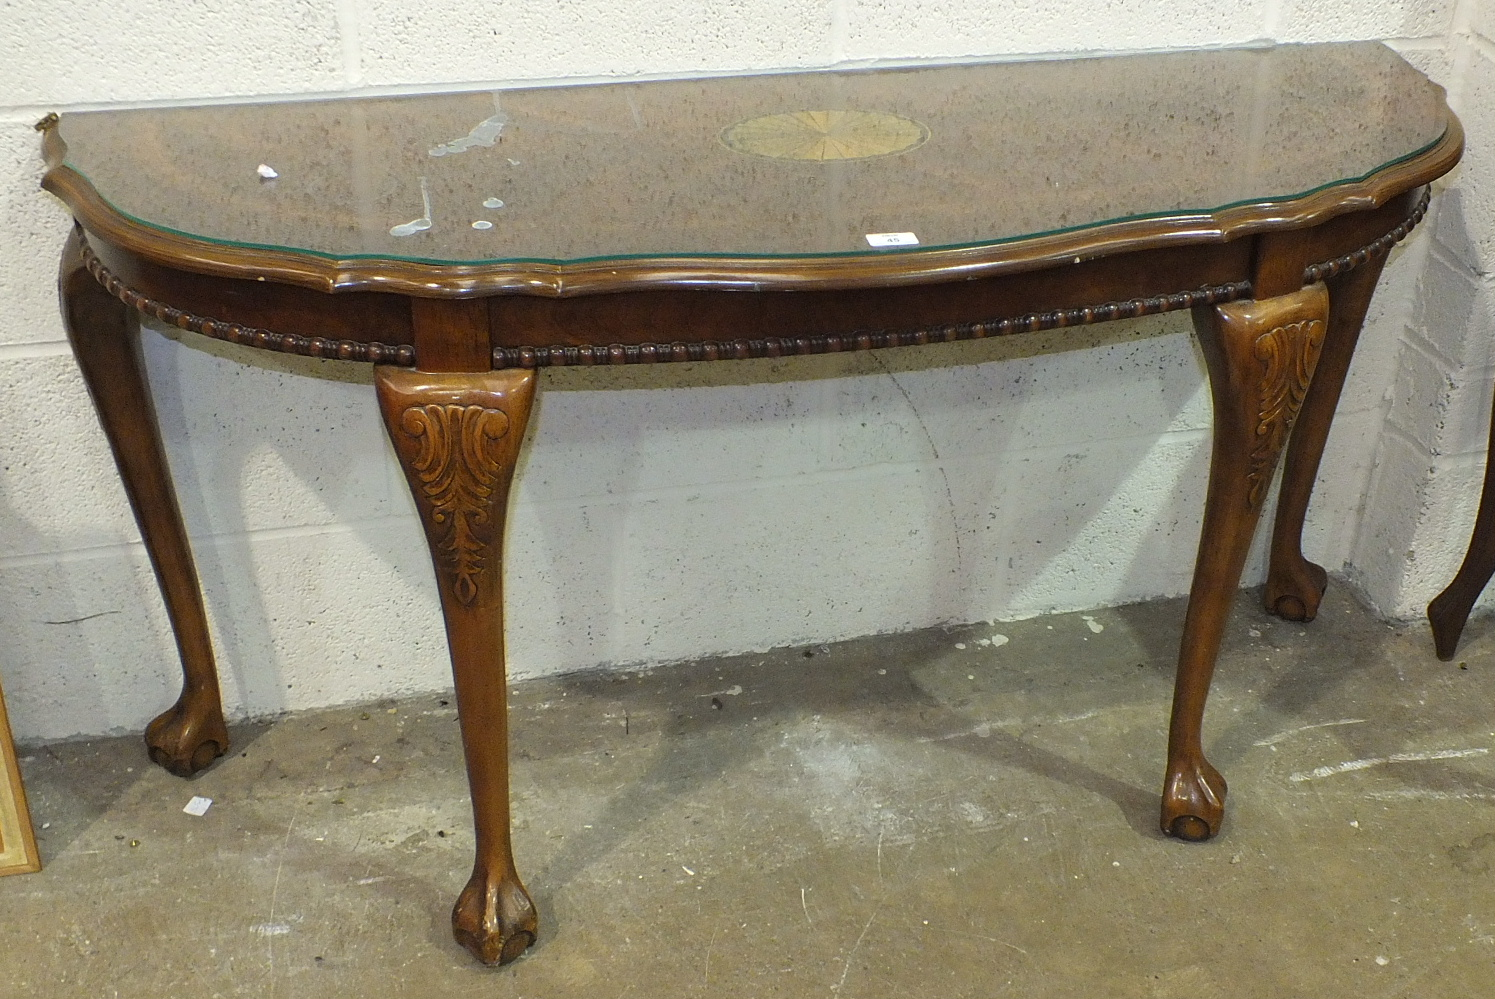 Lot 45 - A reproduction walnut hall table with single drawer, 75cm wide and another reproduction hall table.